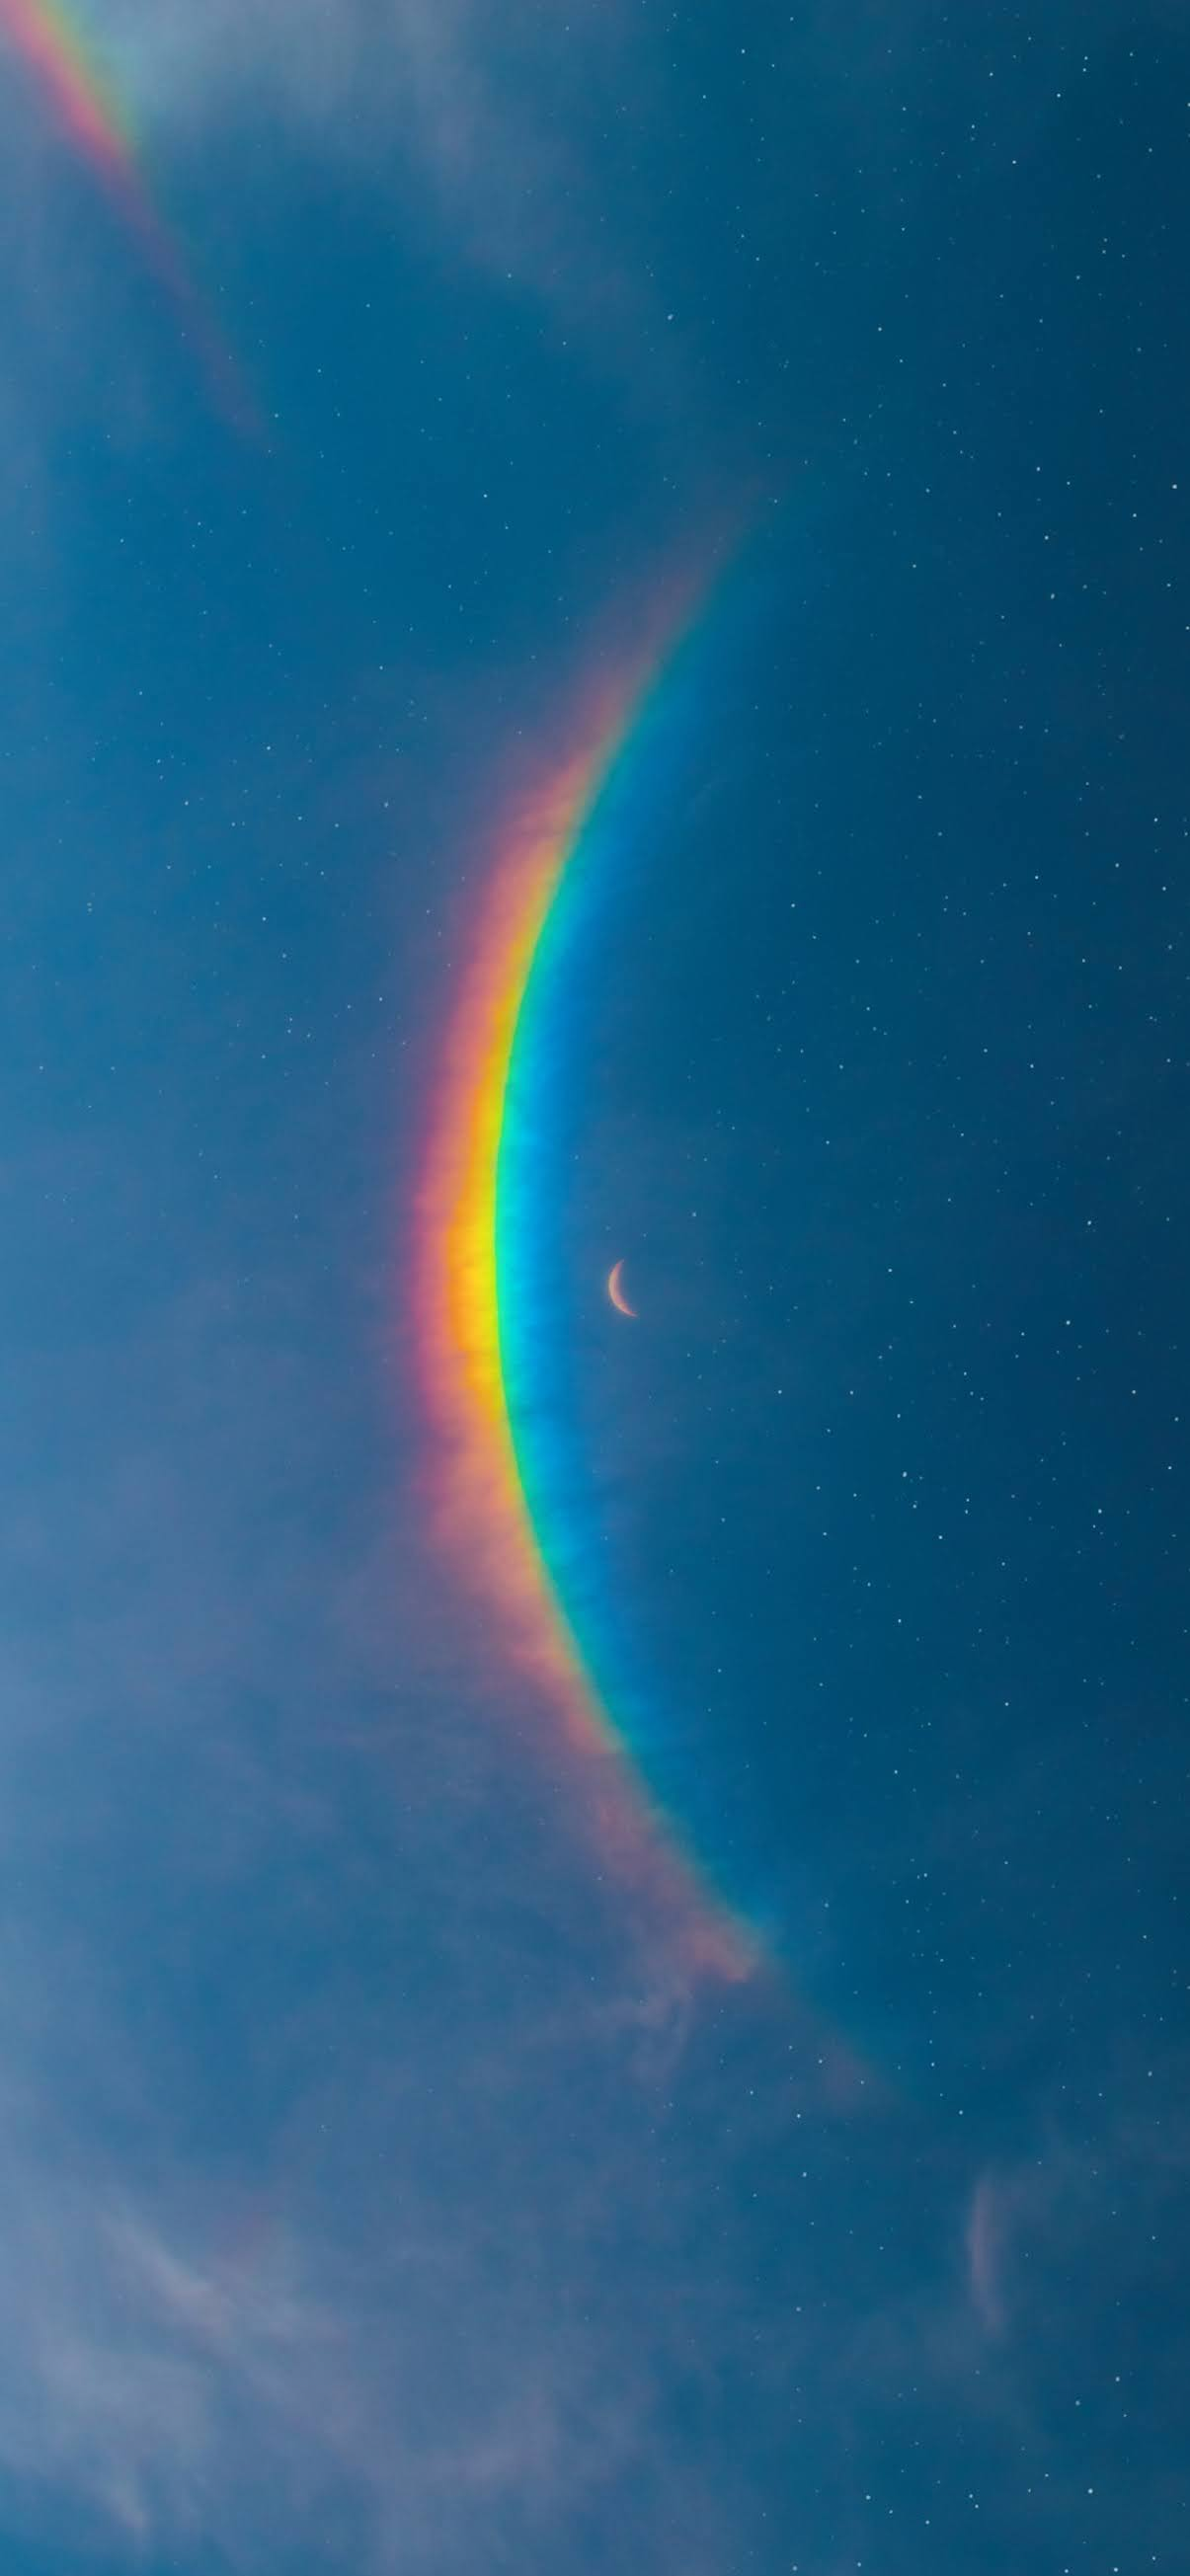 The moon over the rainbow